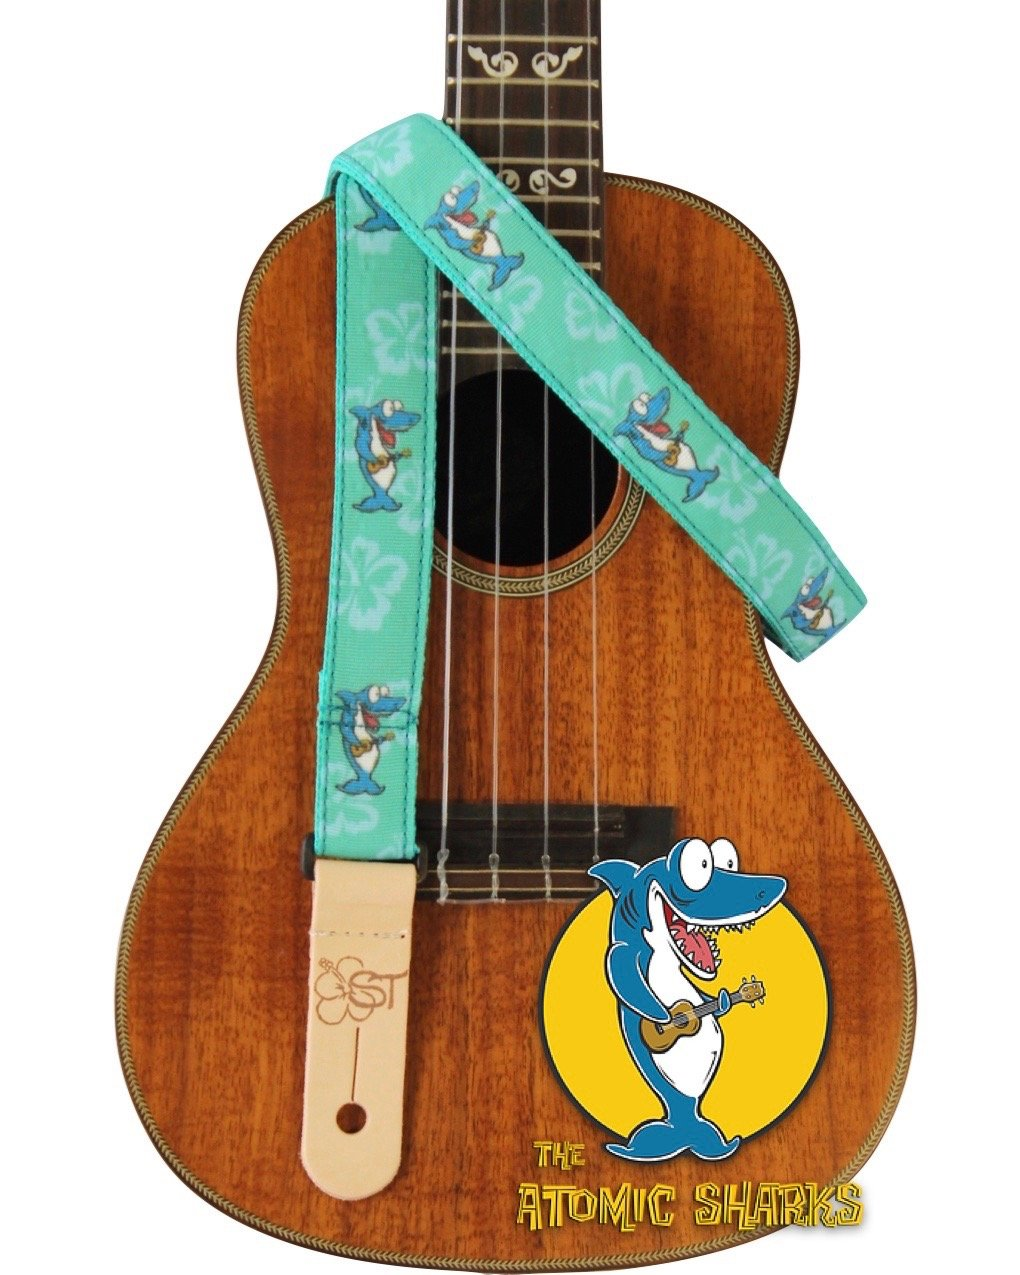 Sherrin's Threads 1 Atomic Sharks Signature Ukulele Strap - Teal